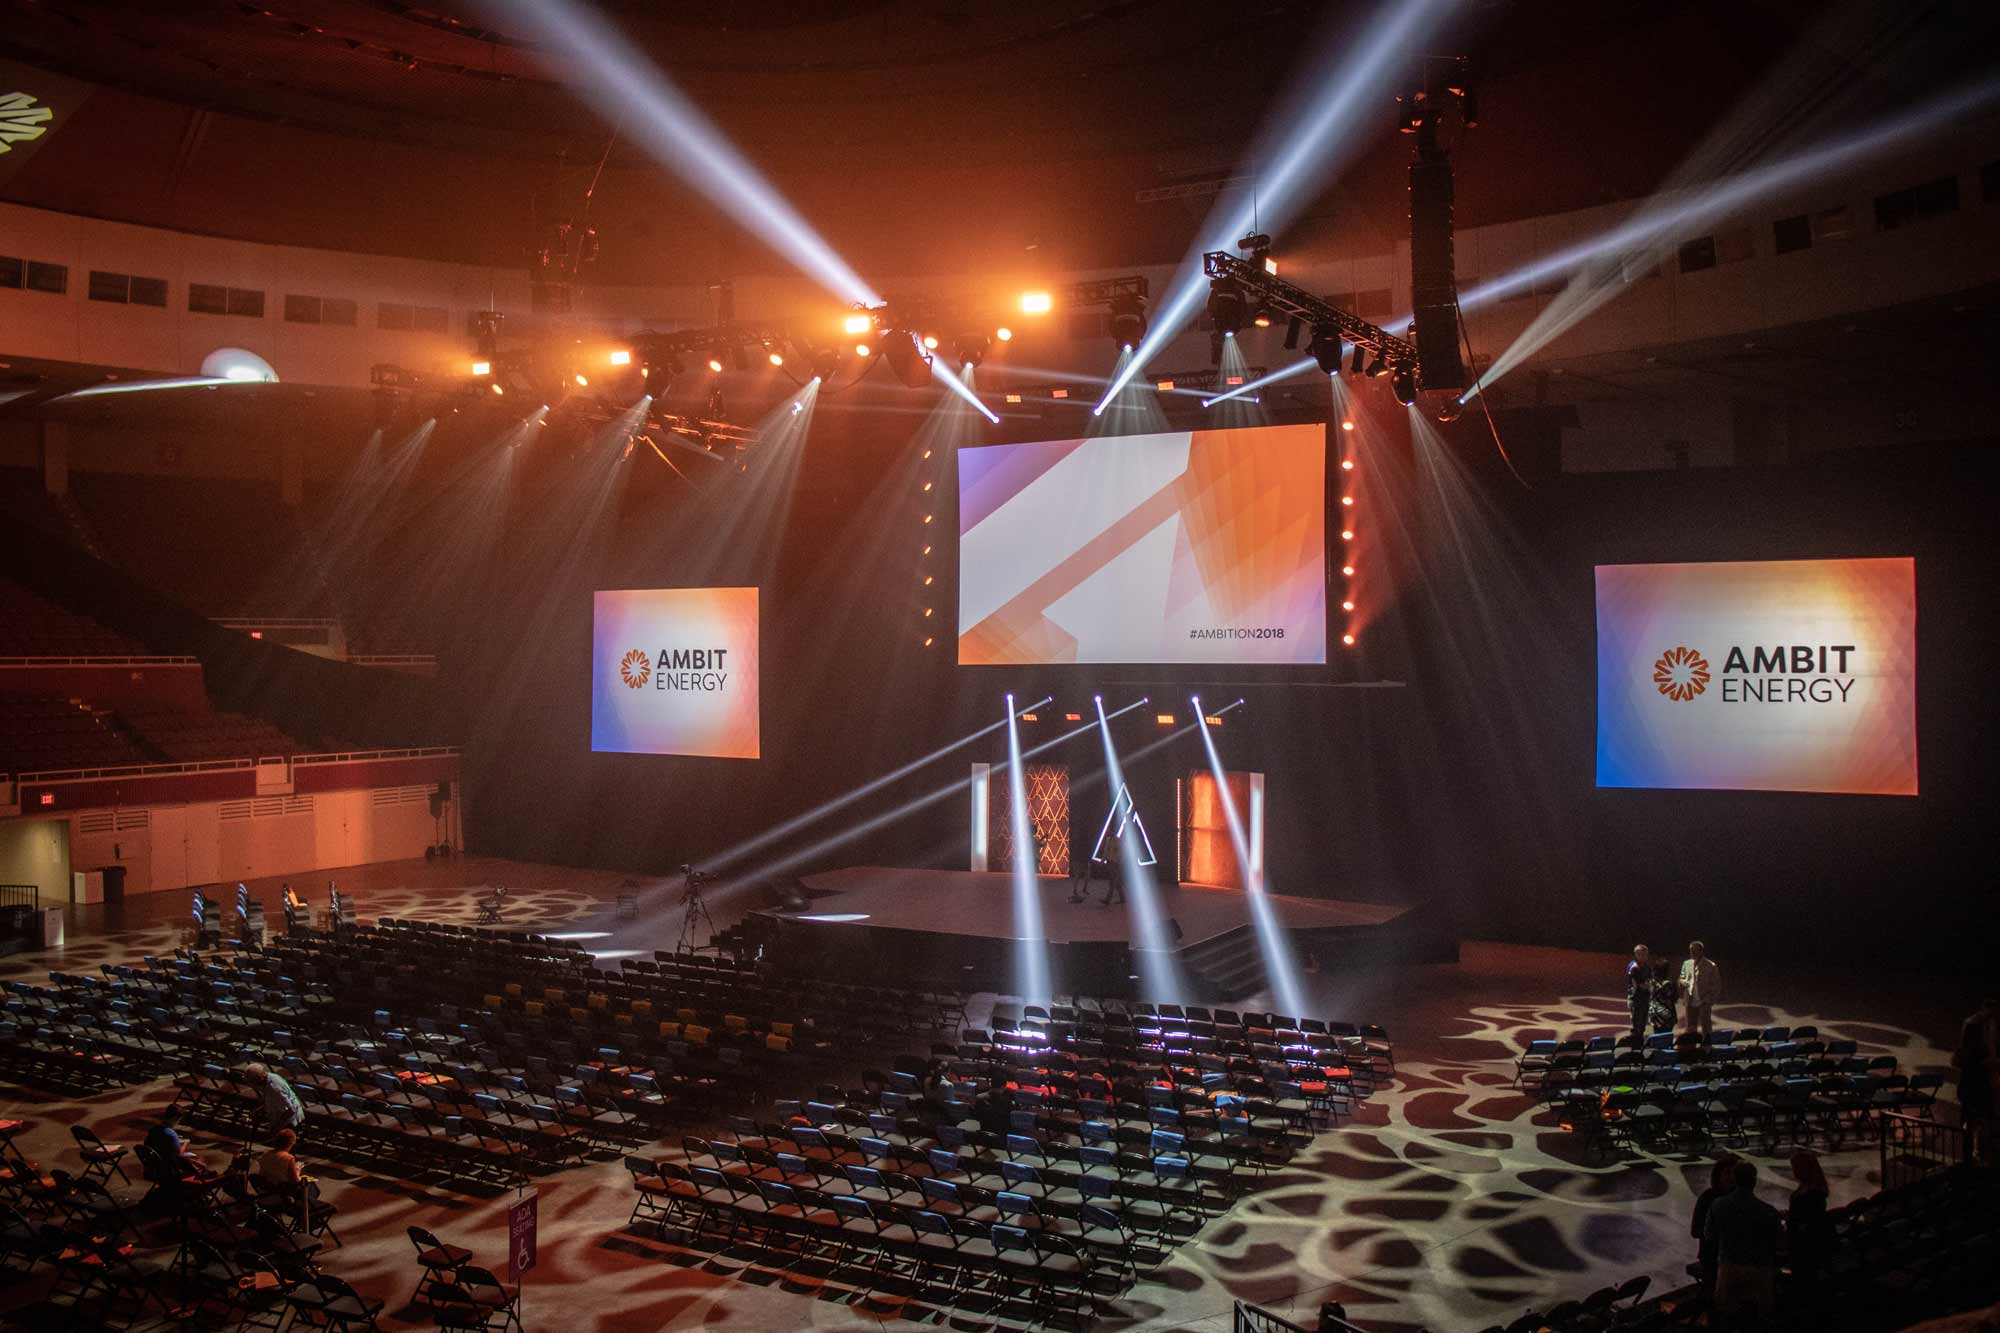 Arena A/V set up during AMBITION 2018